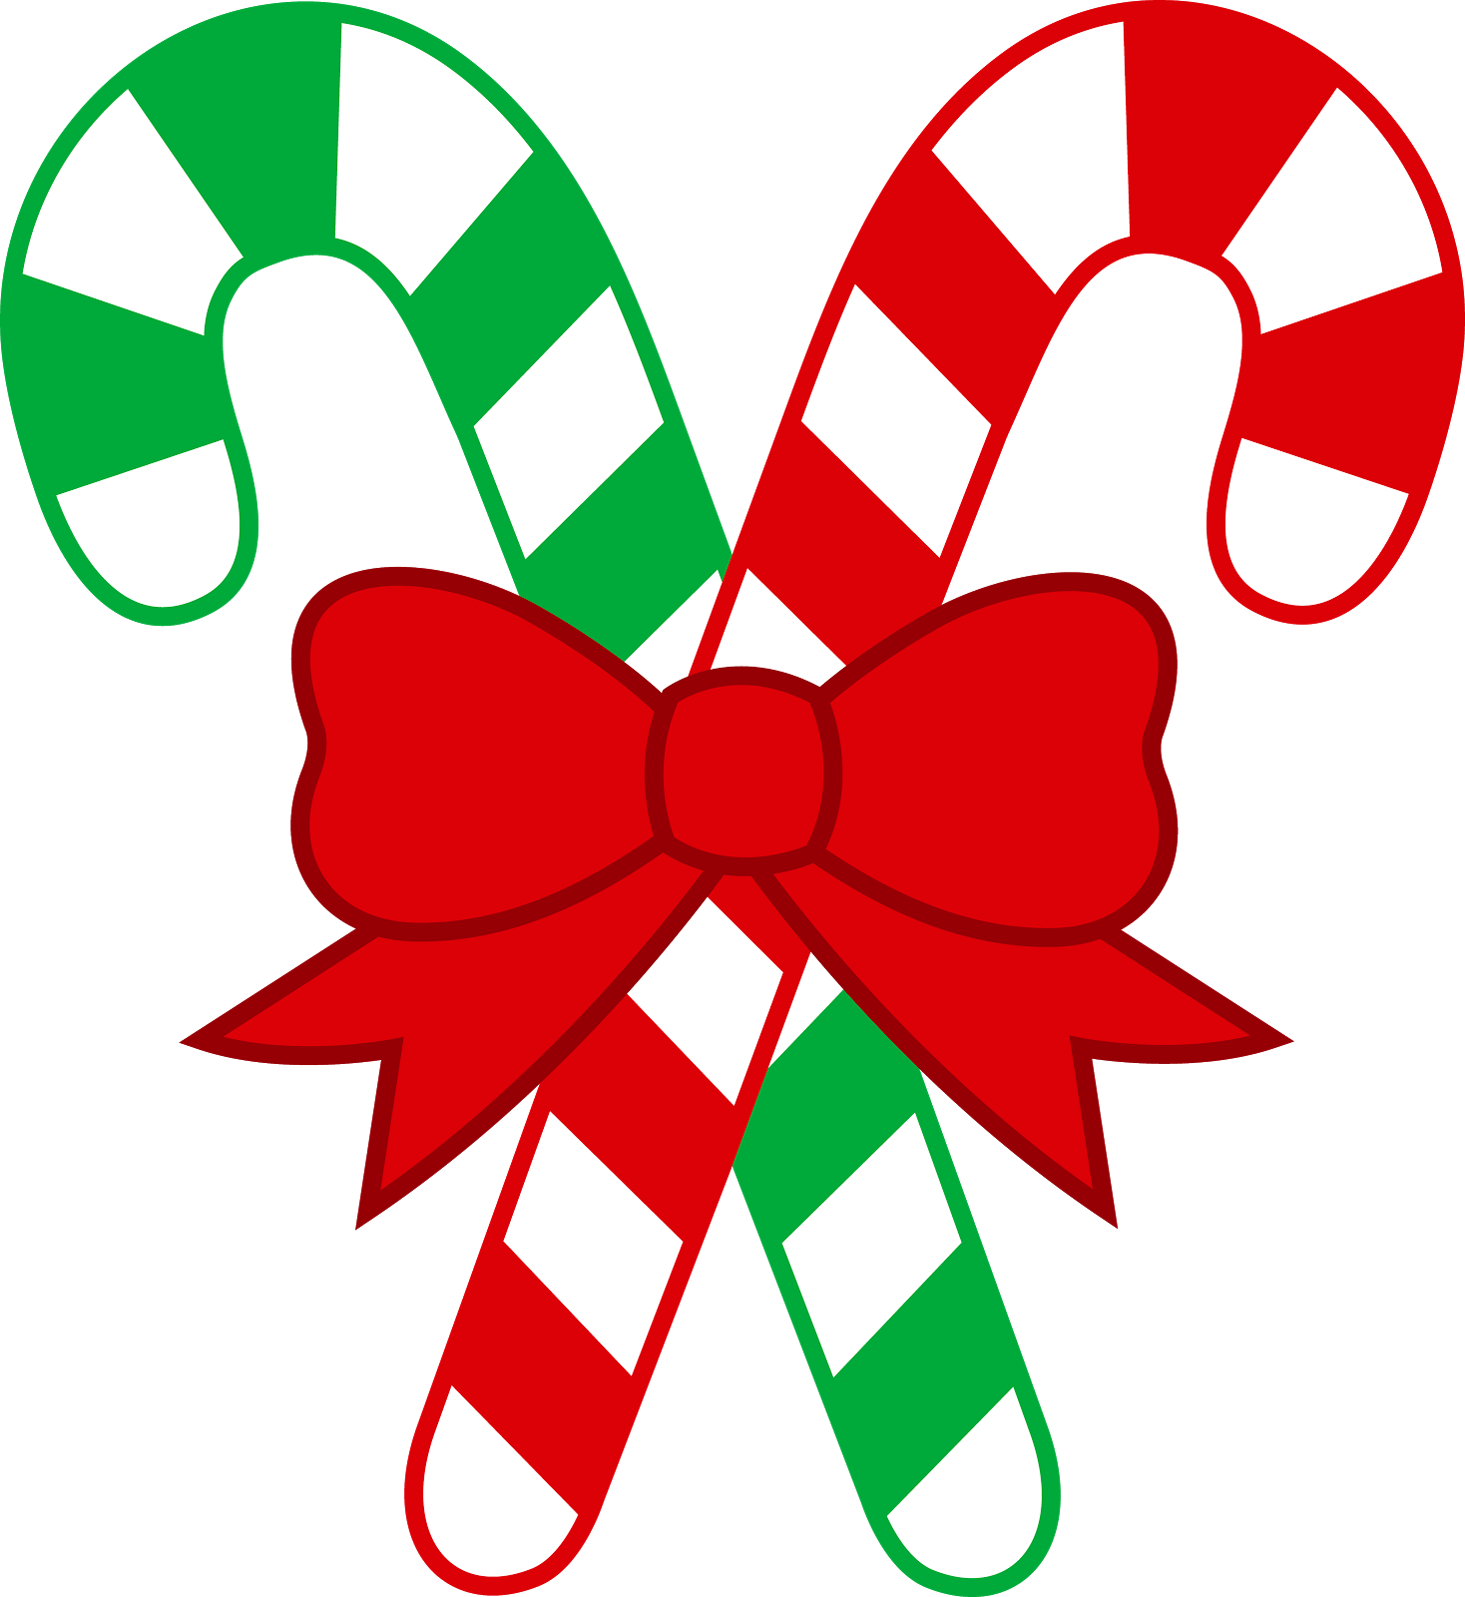 Free Candy Cane Clipart Public Domain Ch-Free candy cane clipart public domain christmas clip art images 2-2